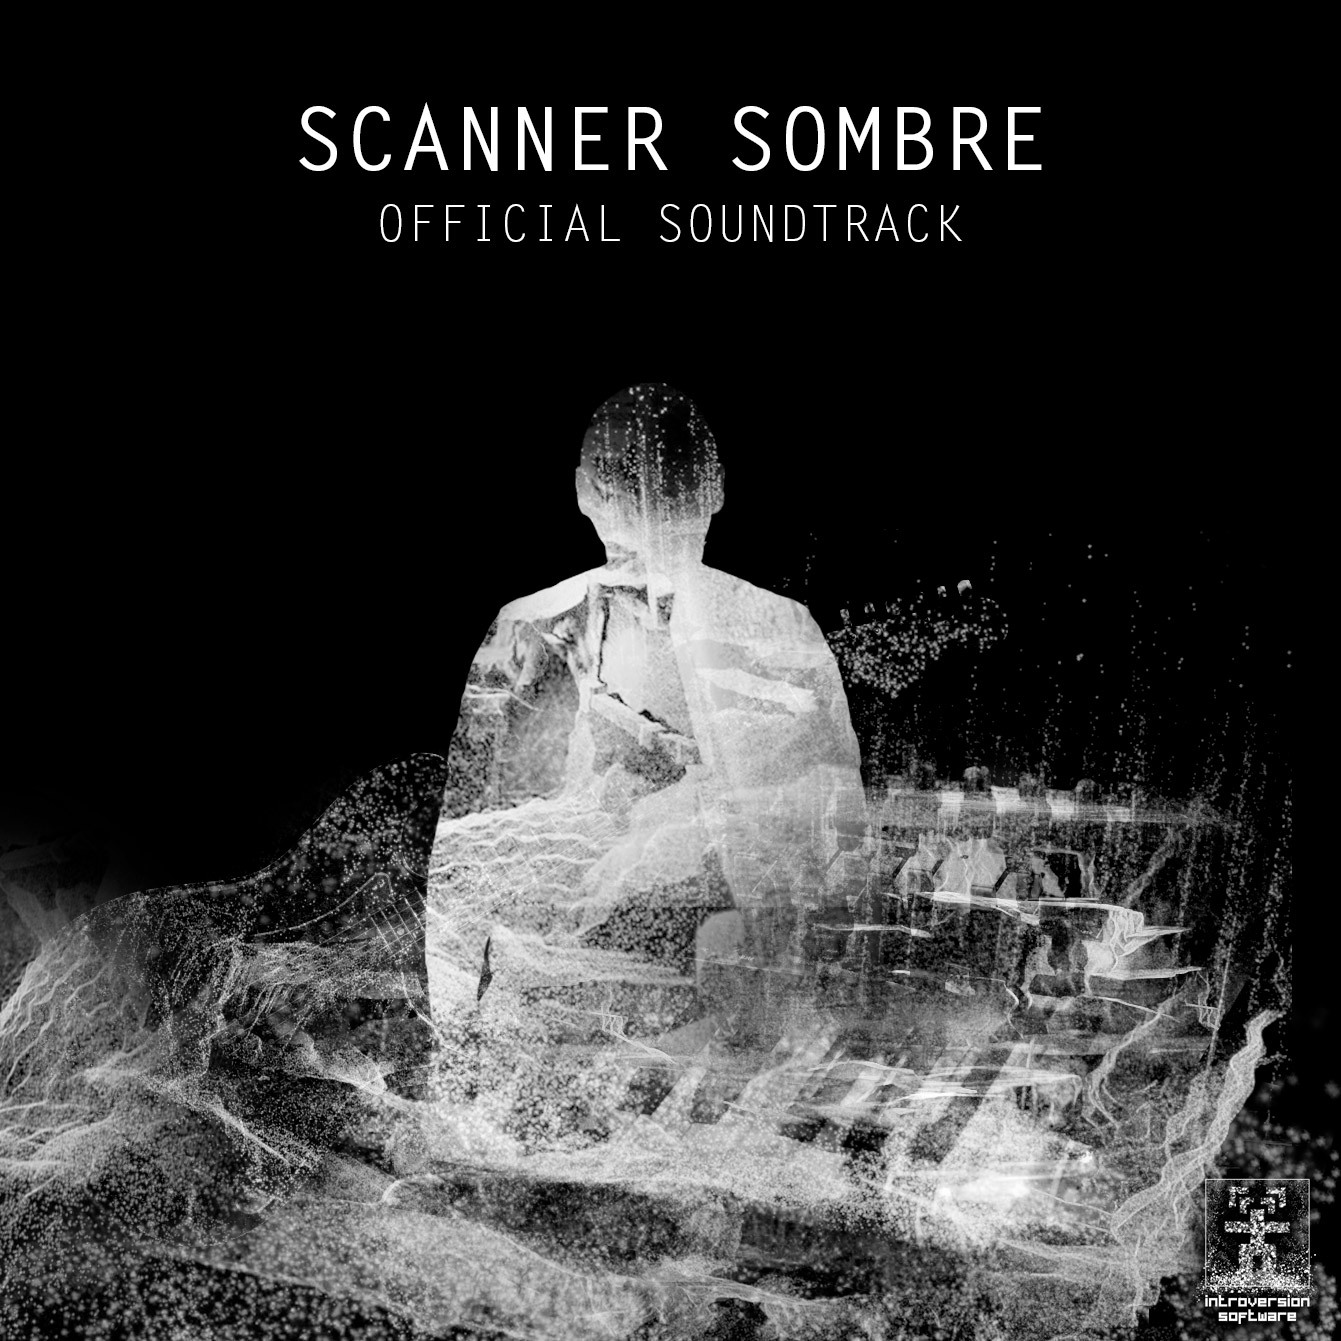 Scanner sombre on steam as a thank you gift we have released the official soundtrack as a free download for anyone who owns scanner sombre thank you so much m4hsunfo